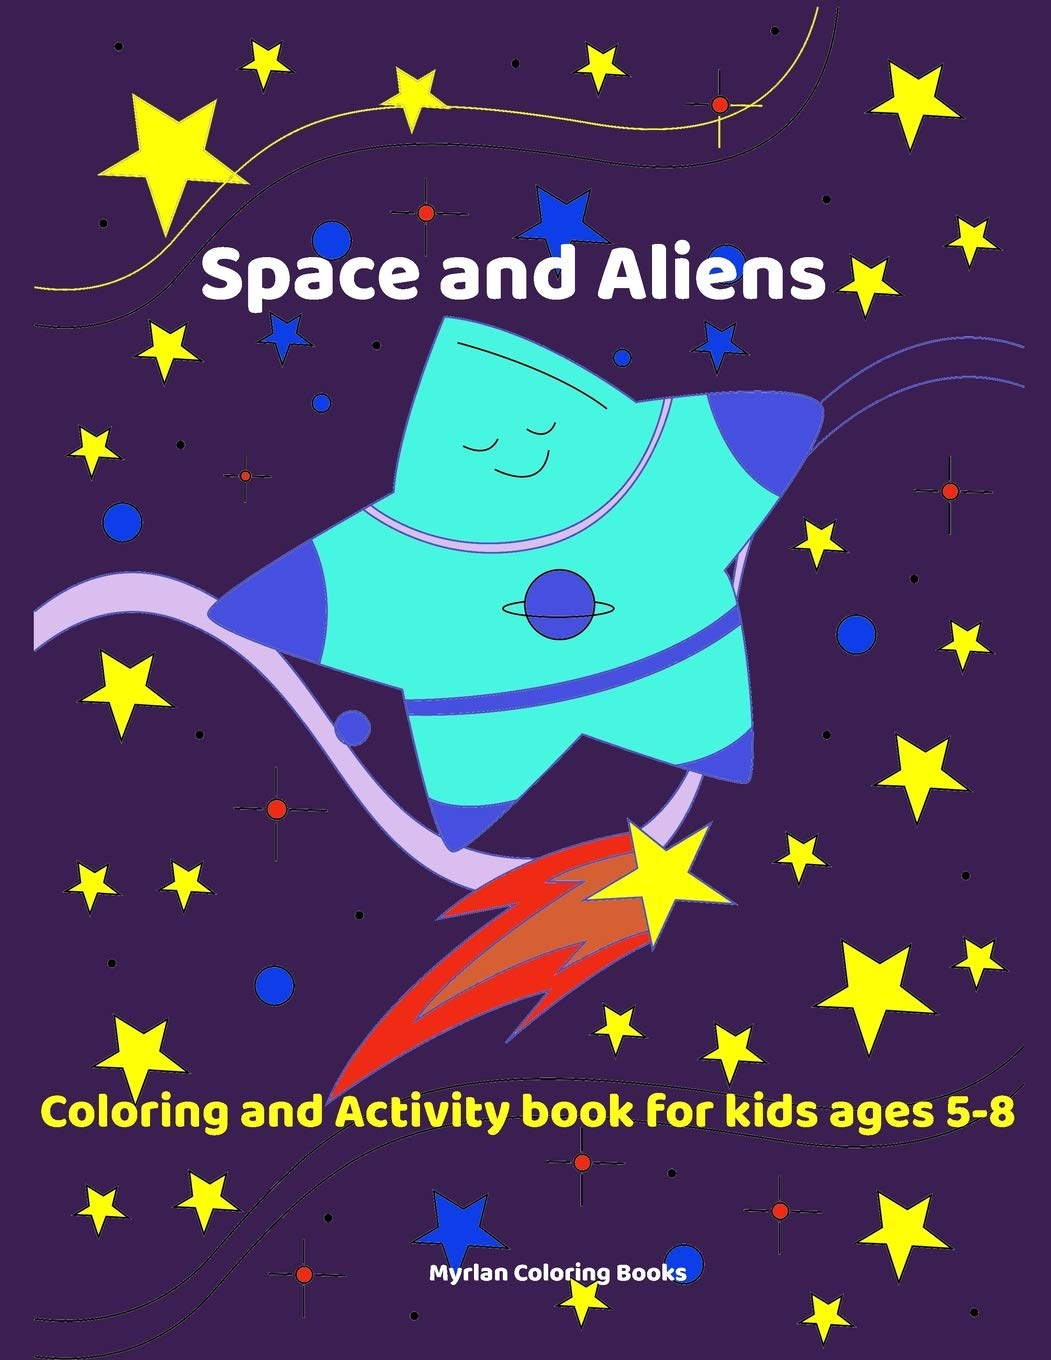 Space And Aliens Coloring And Activity Book For Kids Ages 5 8 Myrlan Coloring Books Coloring Books Myrlan 9798664820263 Amazon Com Books